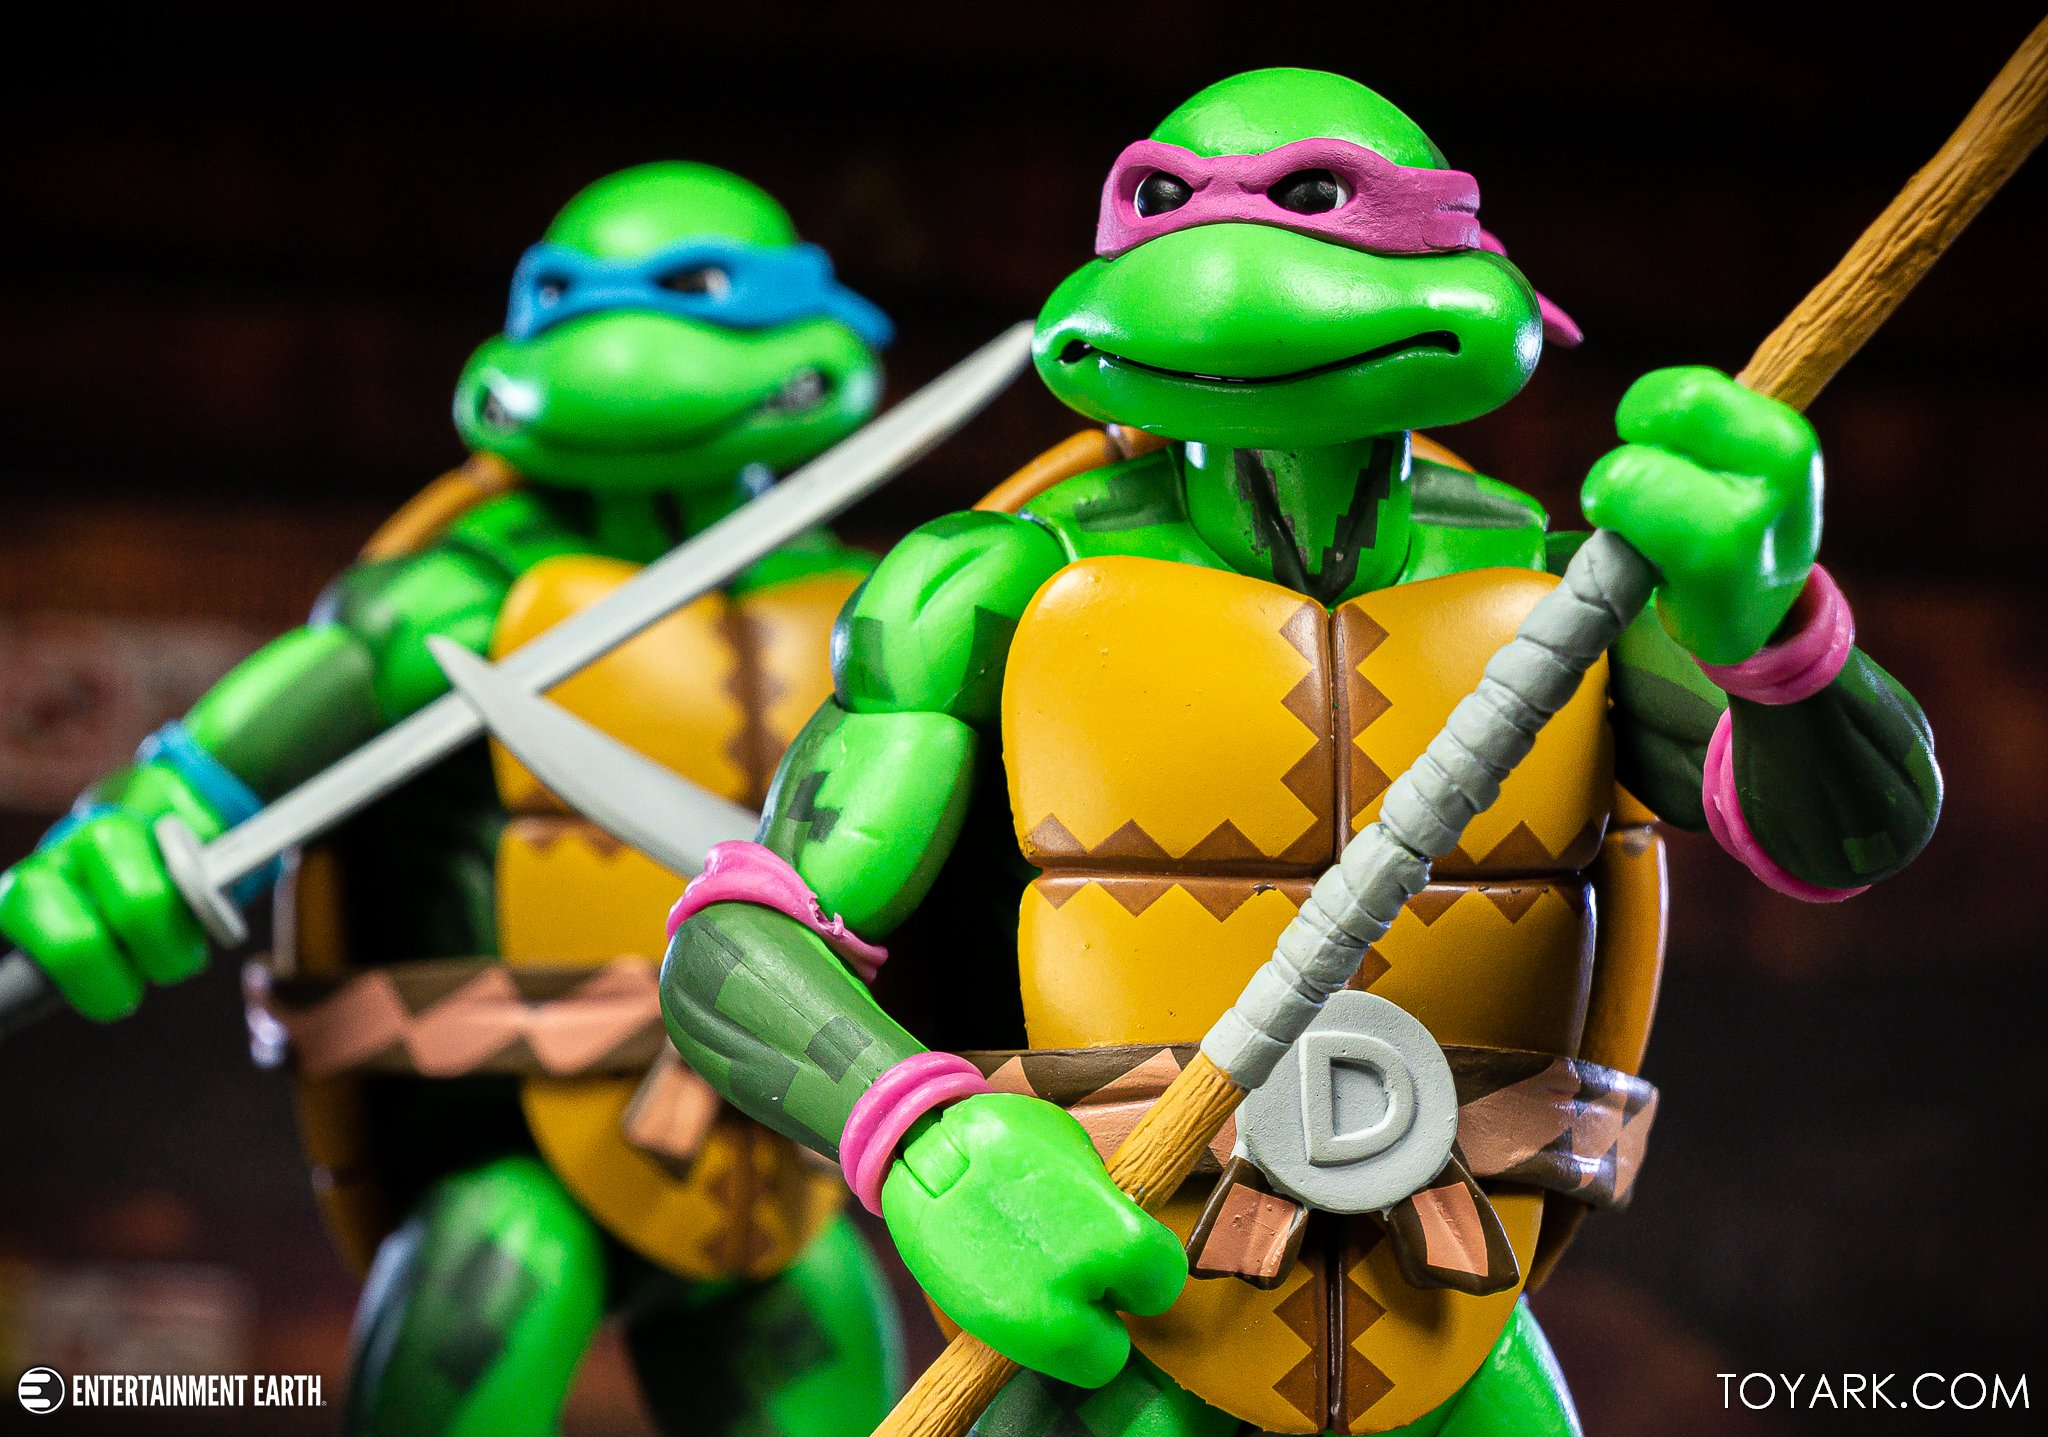 https://news.toyark.com/wp-content/uploads/sites/4/2020/06/NECA-TMNT-Turtles-In-Time-S1-048.jpg